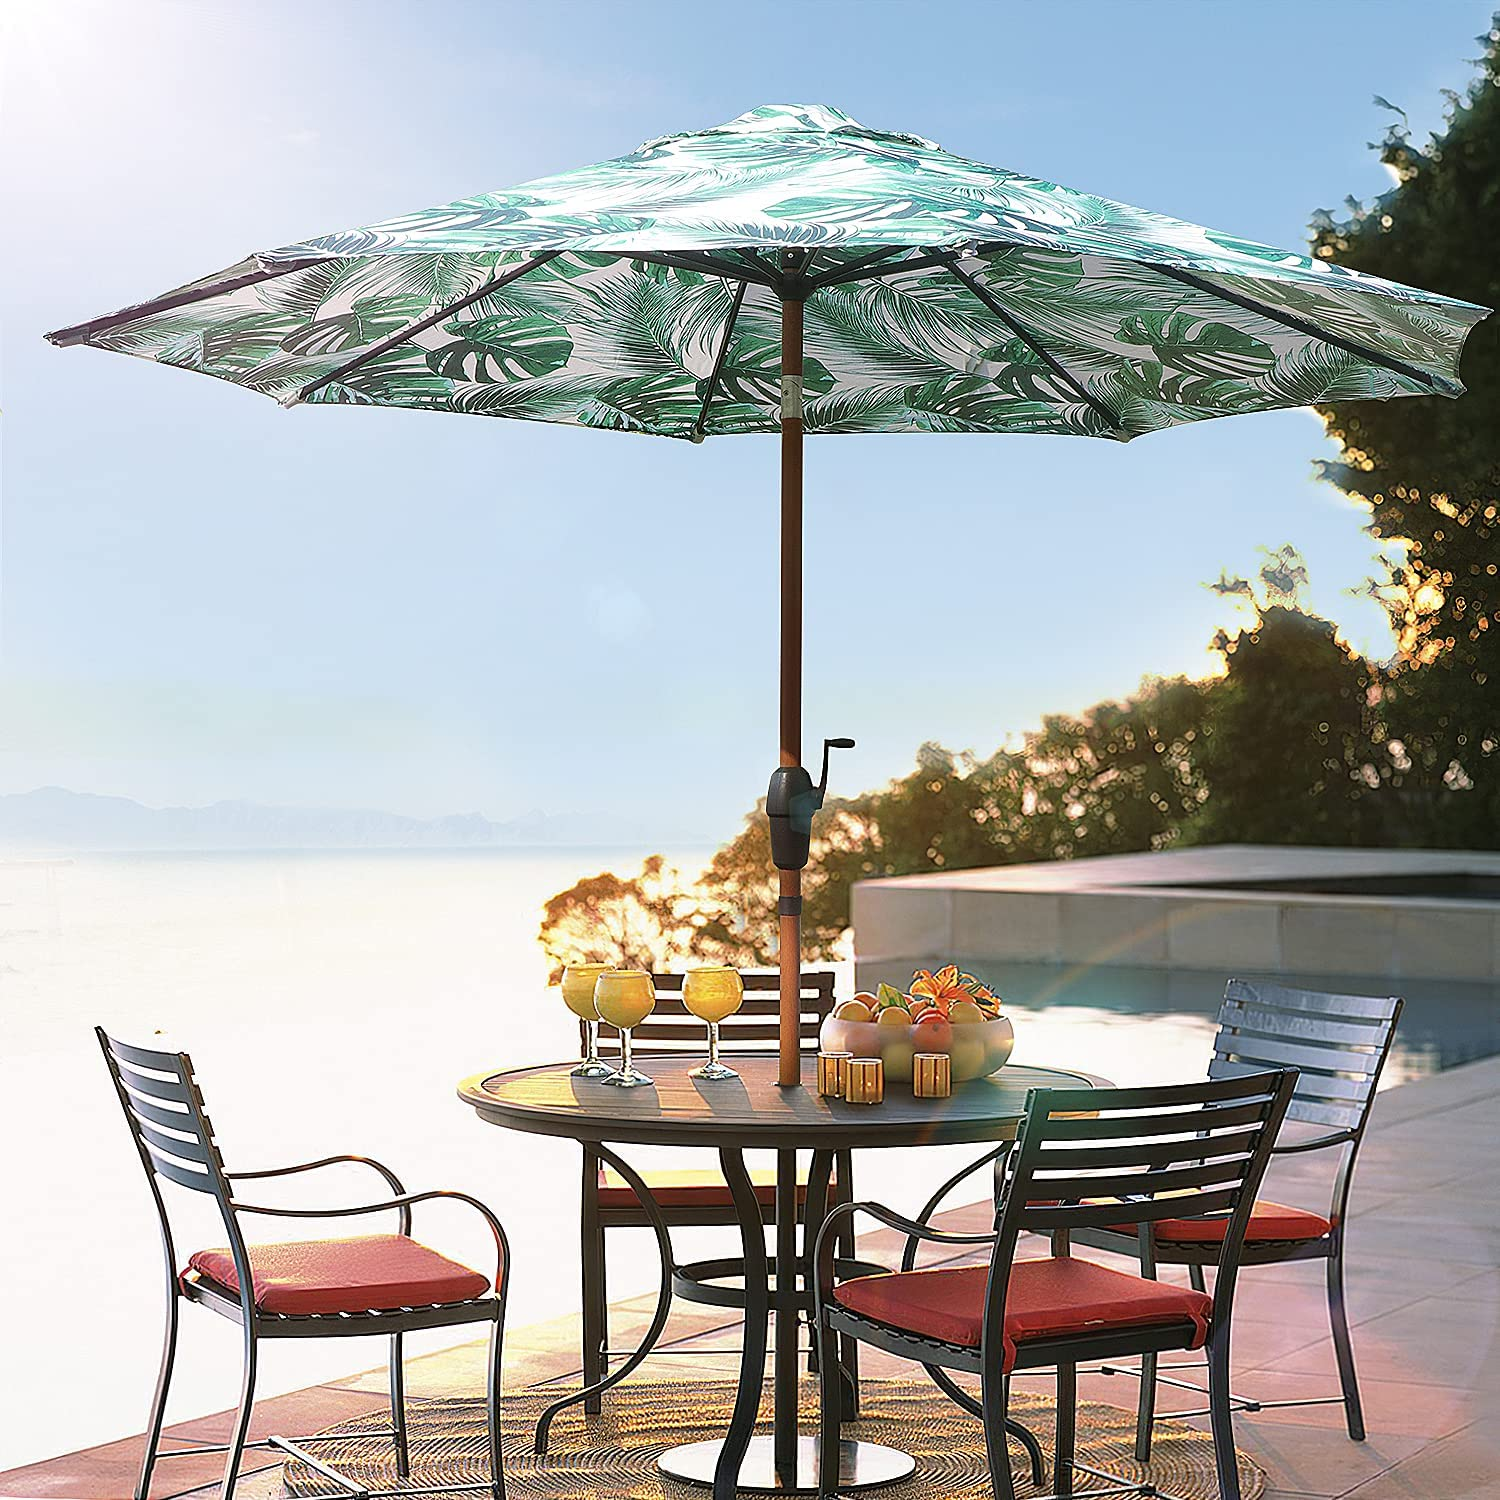 9Ft Patio Umbrella Outdoor Table Umbrellas and Auto-Tilt Cr with Seasonal Wrap Introduction Limited price sale